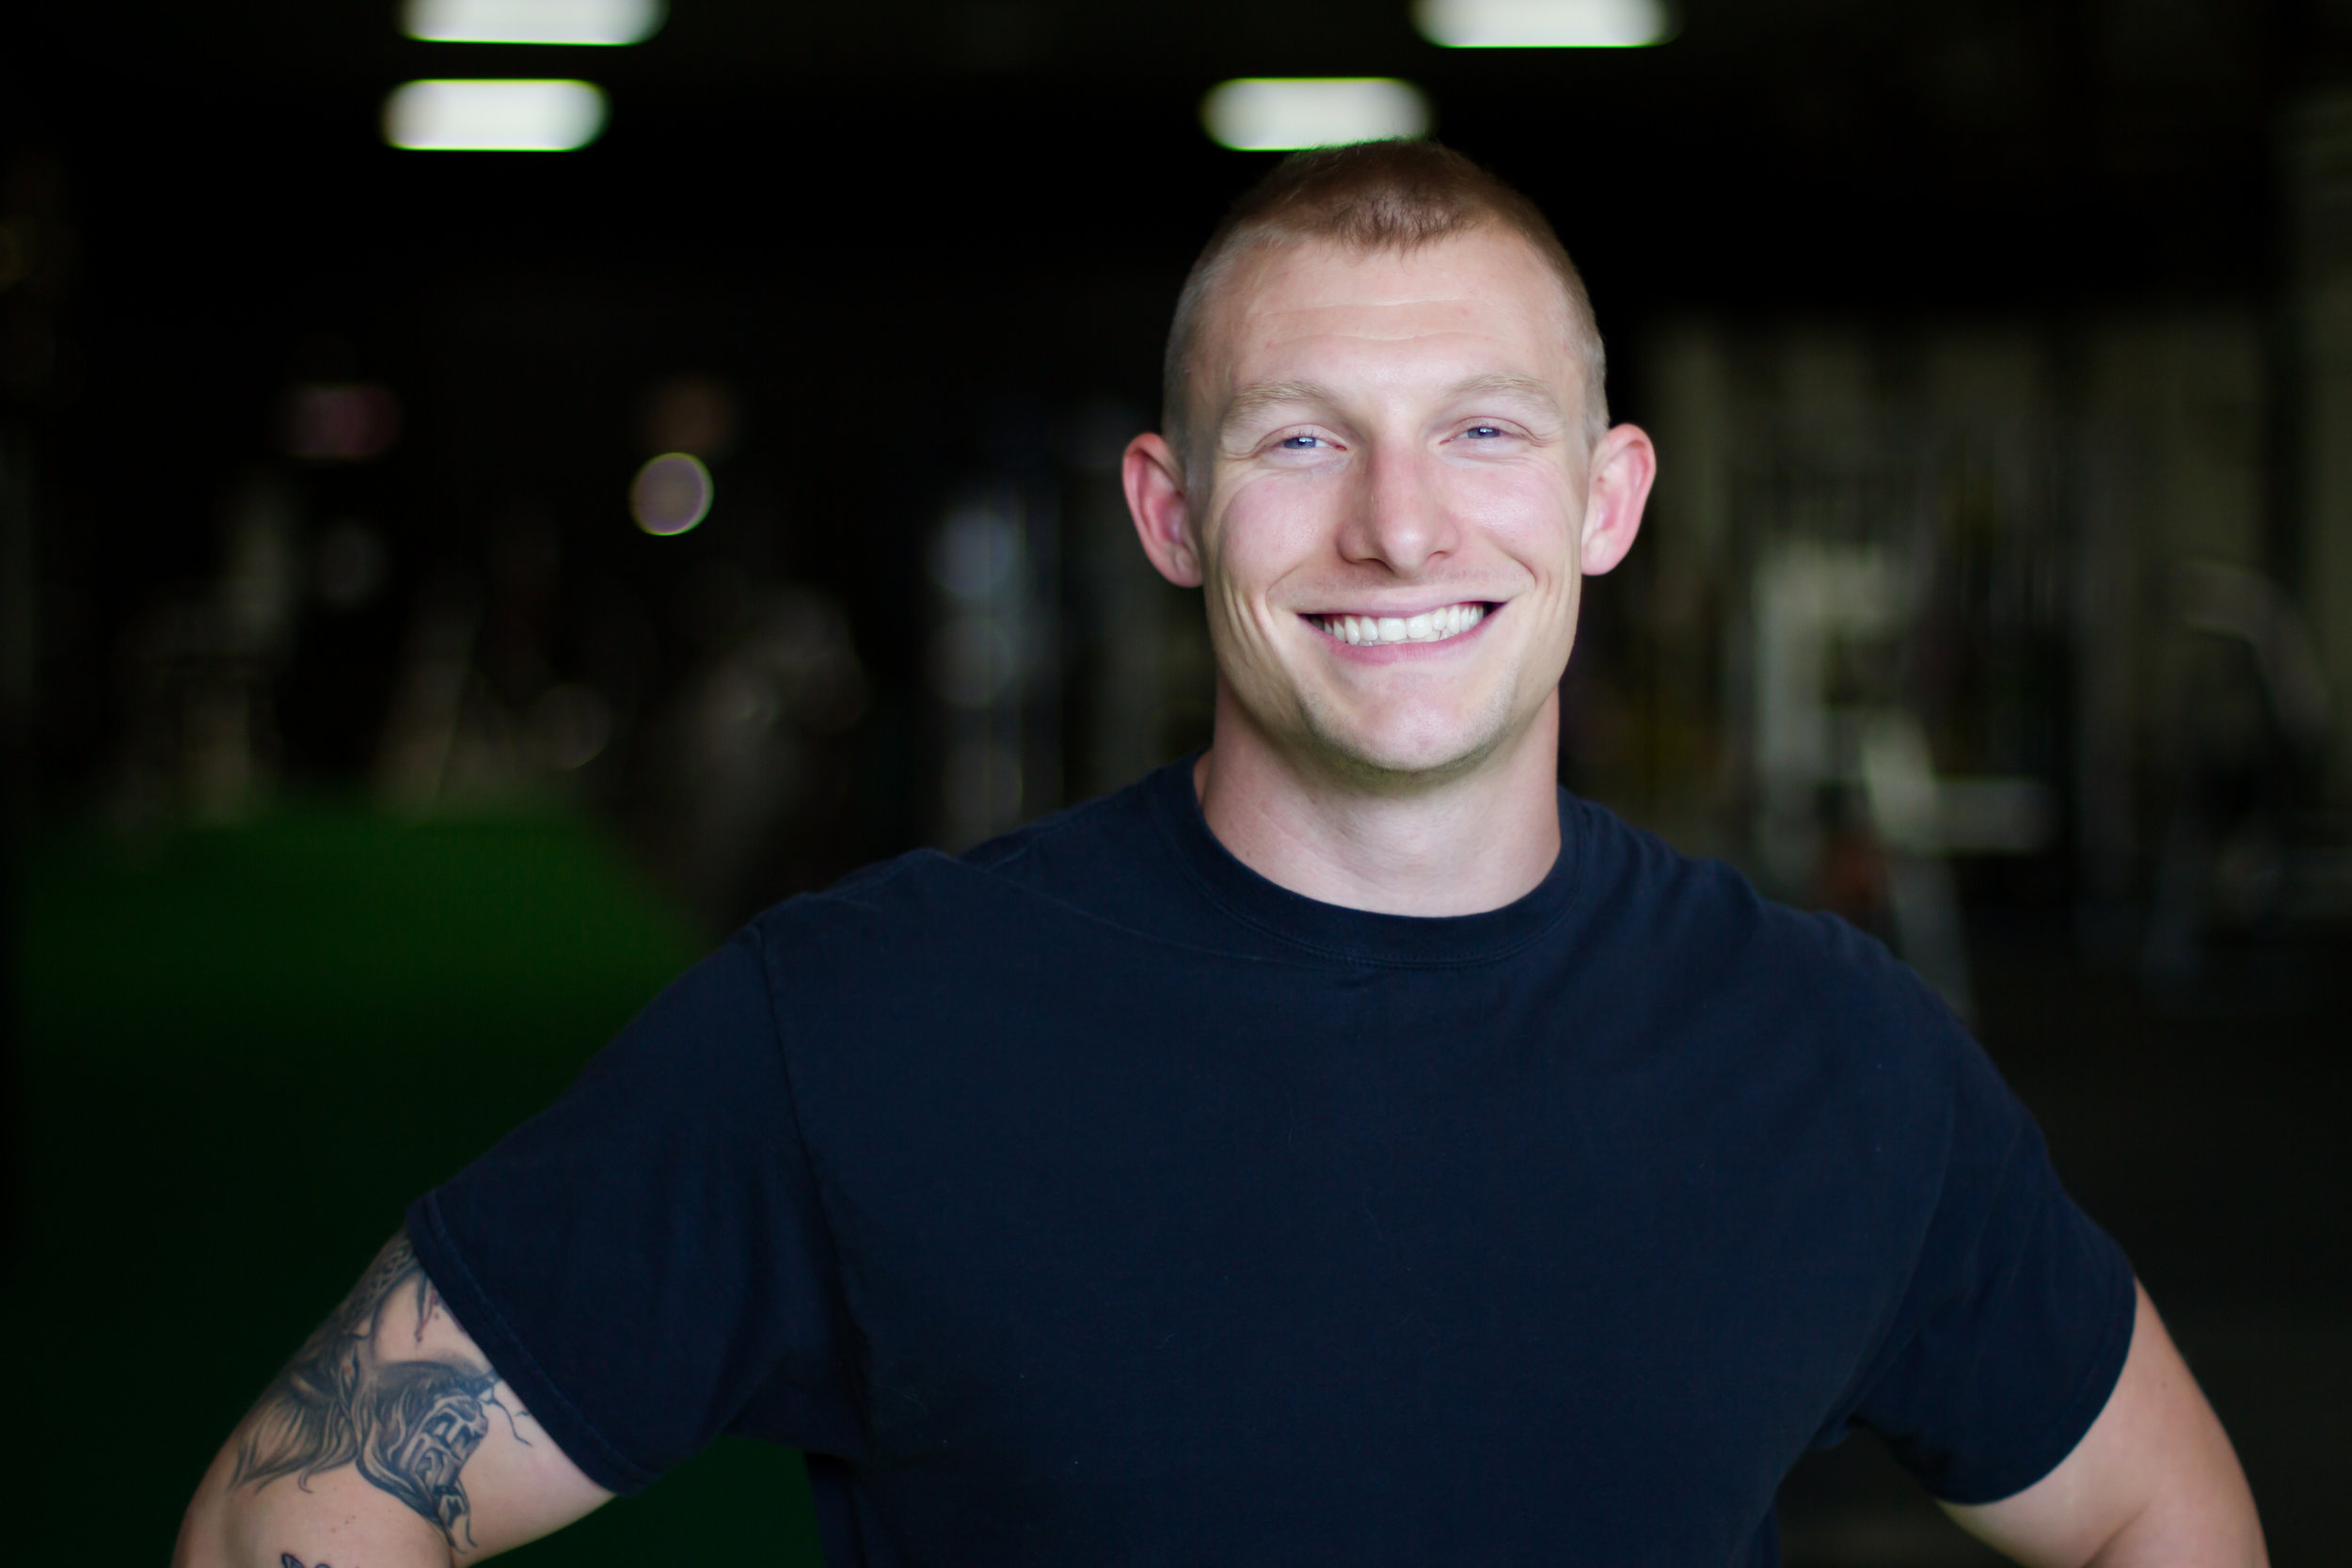 Evan Smith    Coach.  B.A. Journalism U of M. NASM - CPT. FRC Mobility Instructor. Bioforce Certified. Competitive BJJ and Muay Thai practitioner. Jedi Warrior.